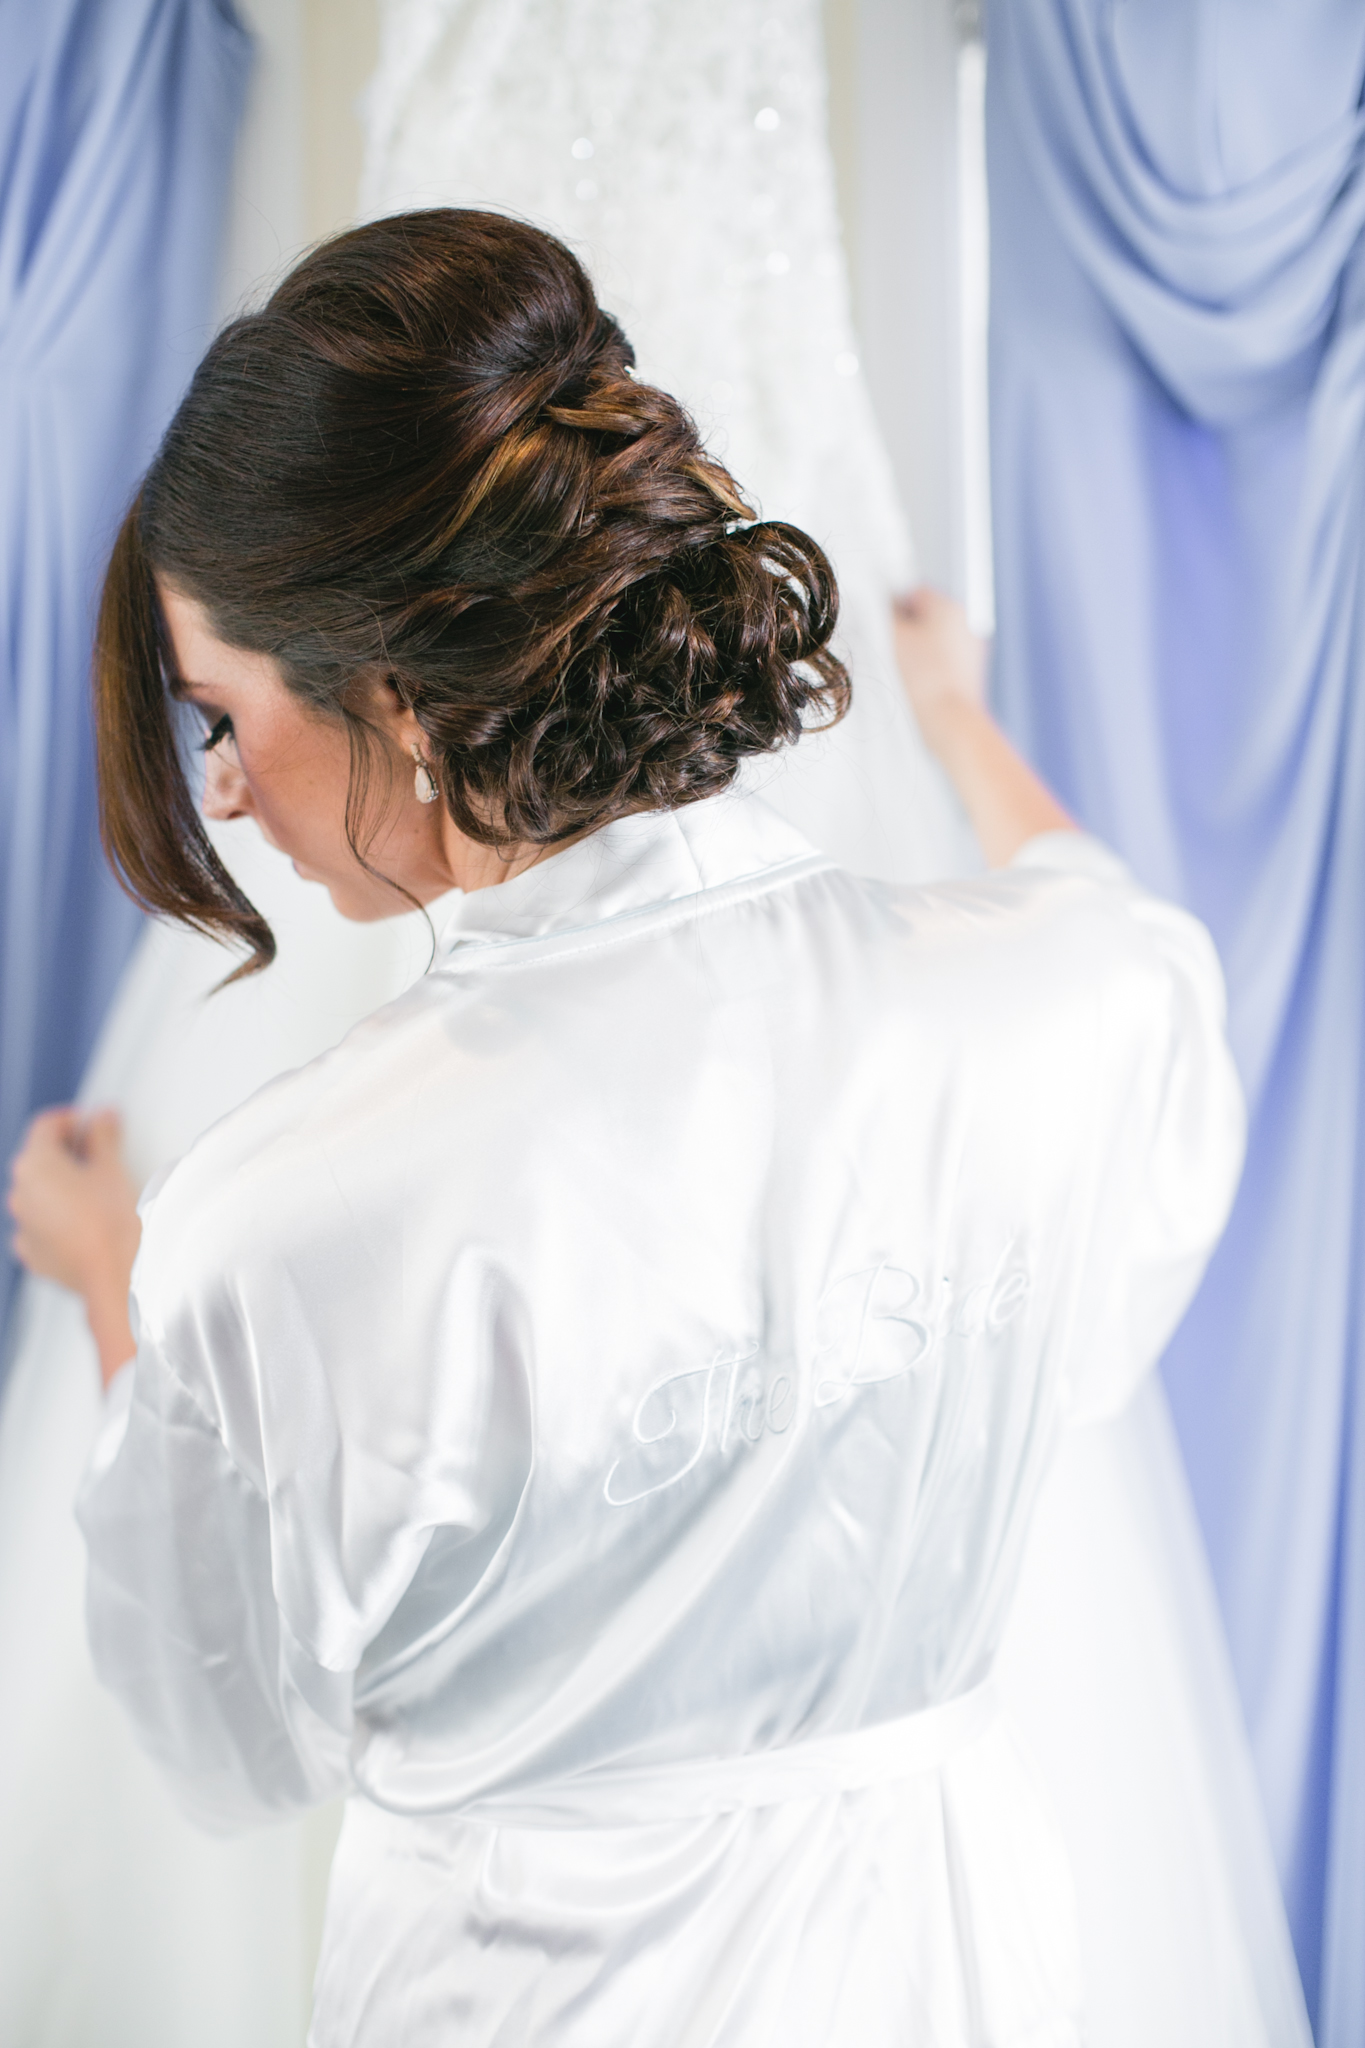 Stephenie getting ready to put on her dress. Also, love these bridal robes.